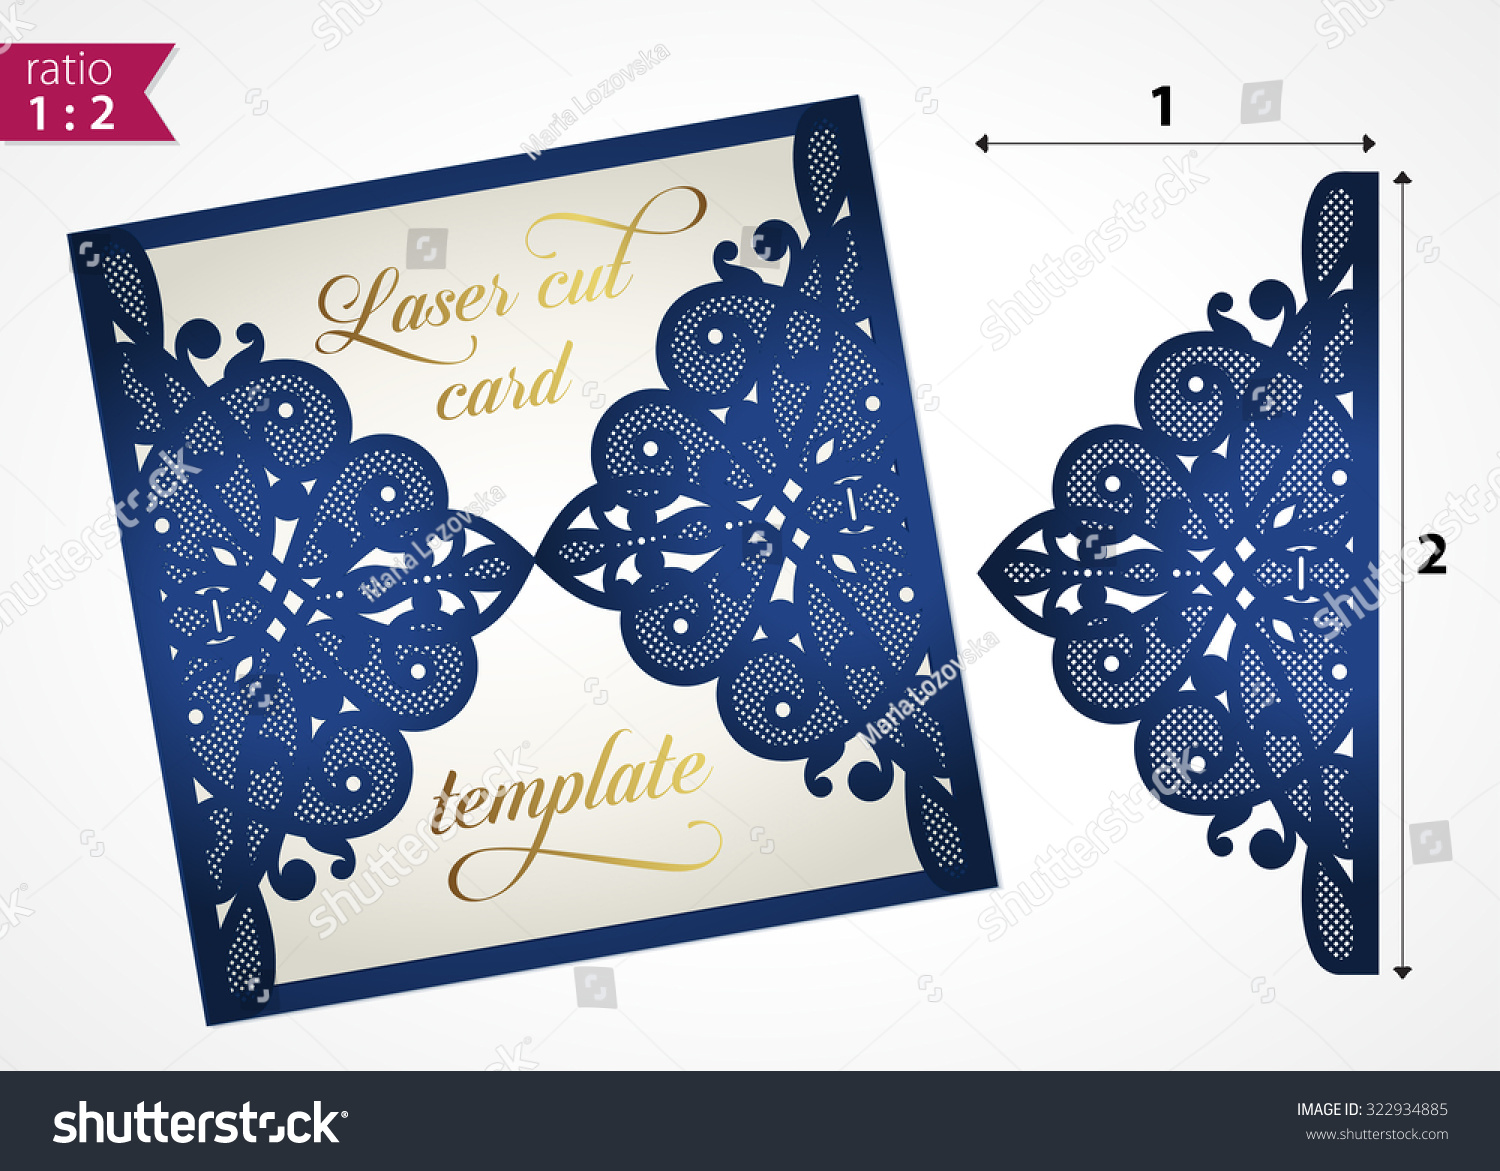 Paper cut out card with lace. Laser cut pattern. Beautiful laser cut ...